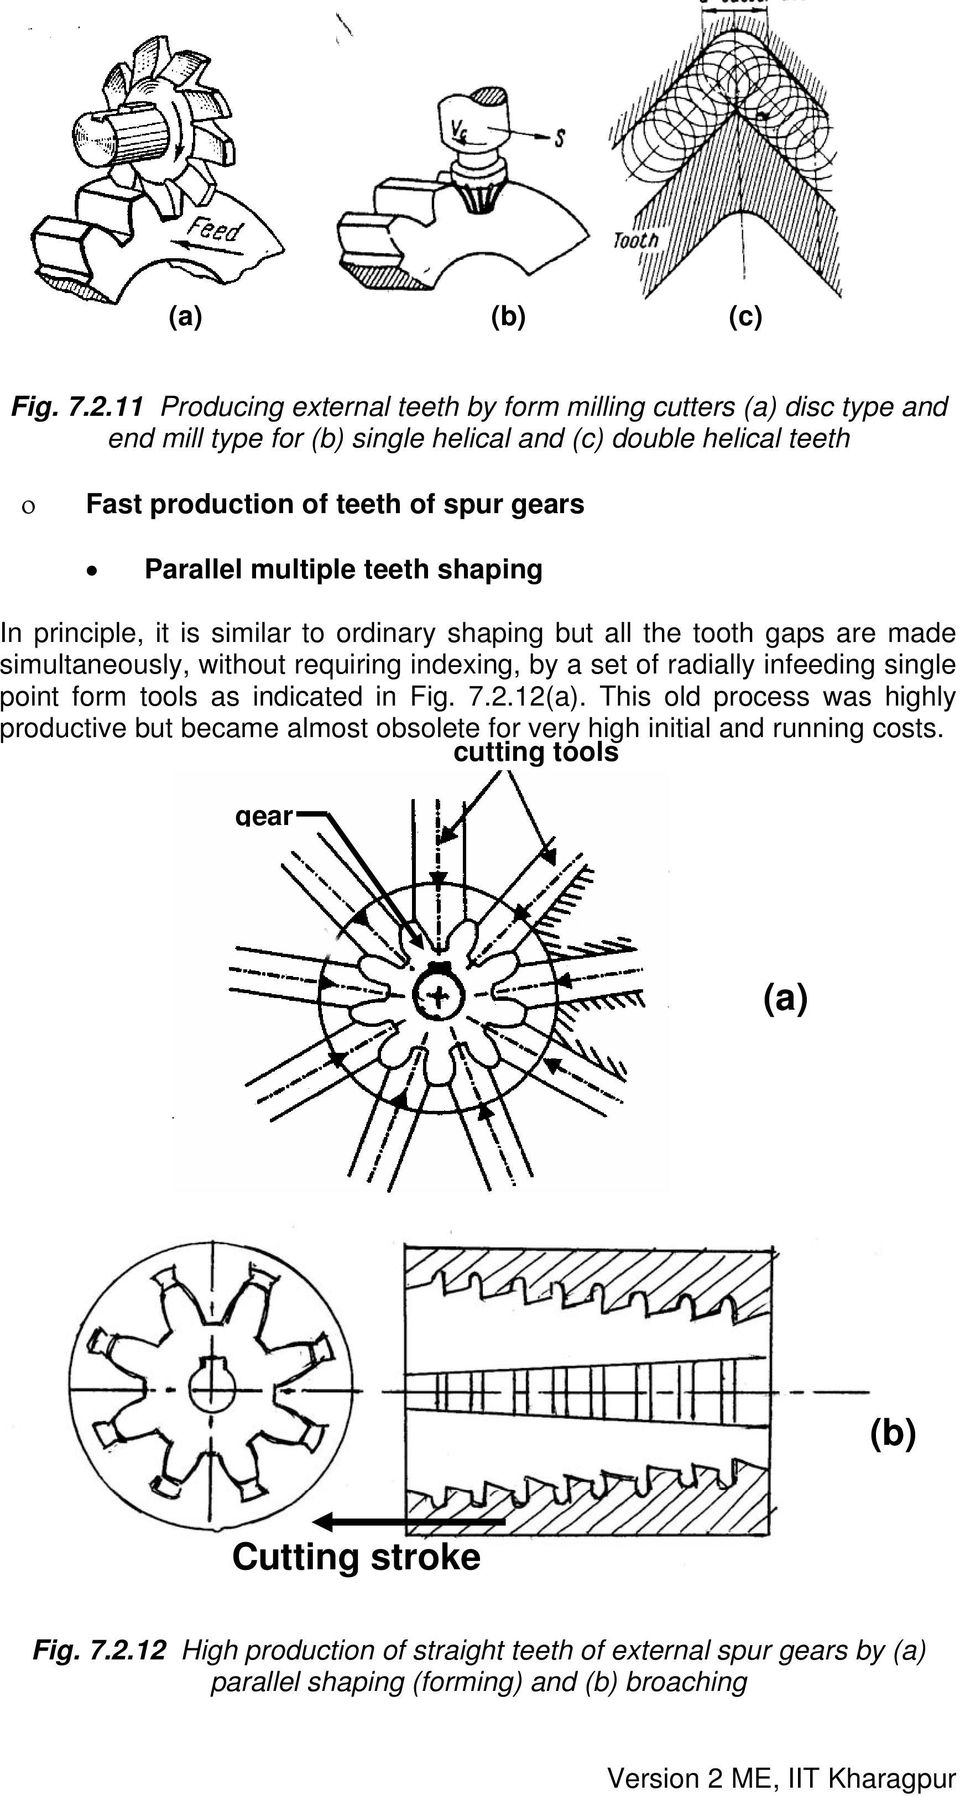 Parallel multiple teeth shaping In principle, it is similar to ordinary shaping but all the tooth gaps are made simultaneously, without requiring indexing, by a set of radially